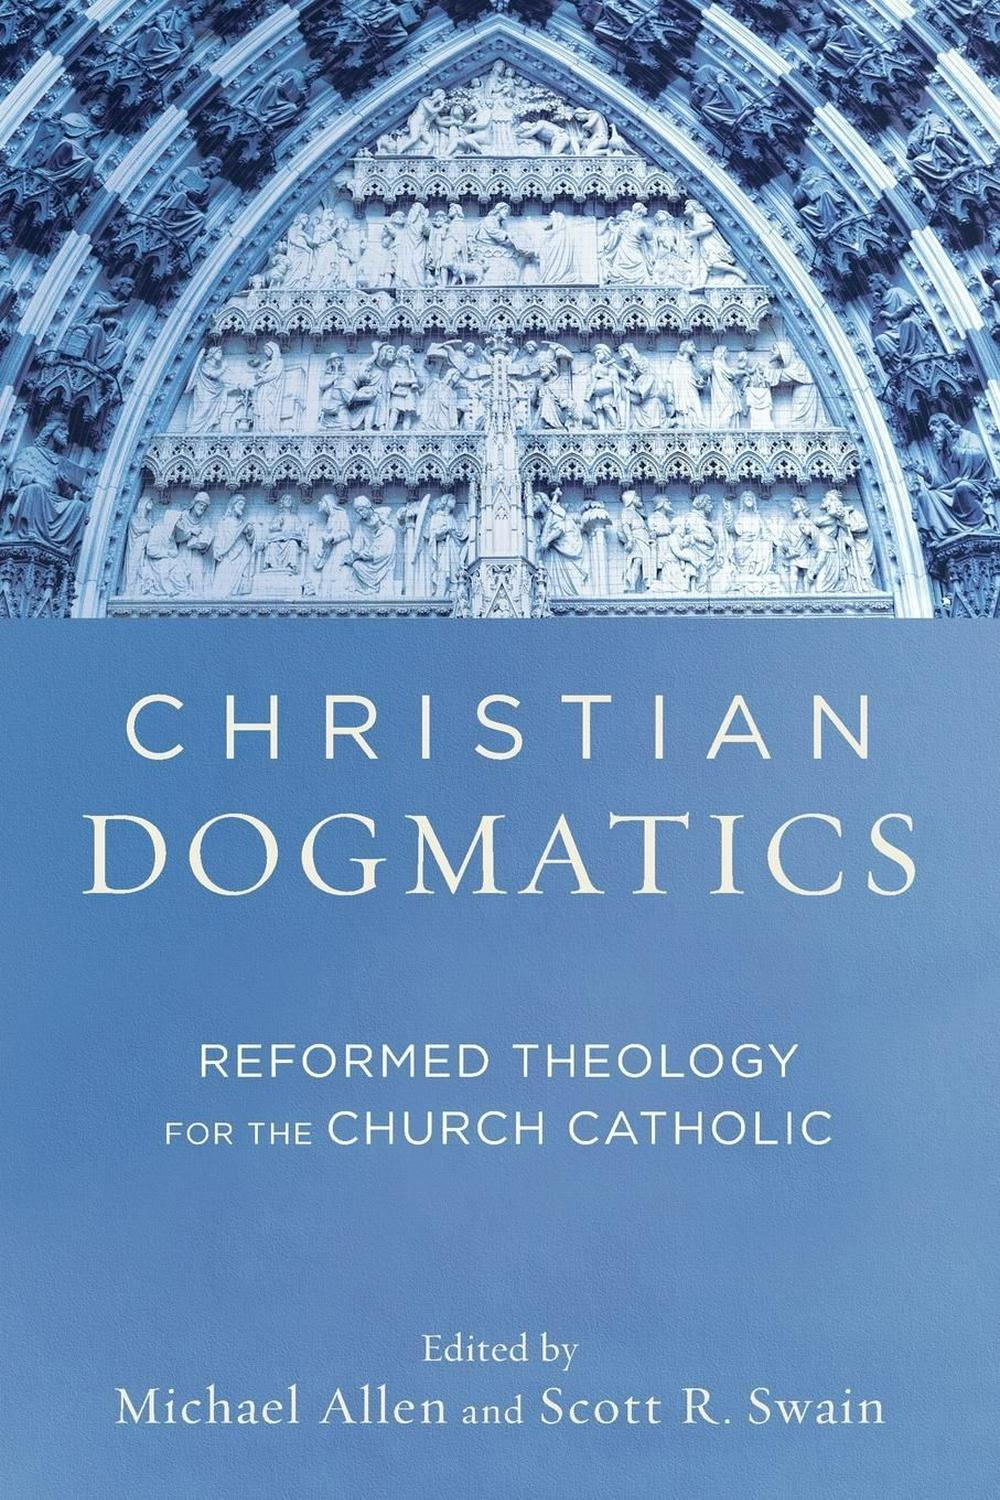 Christian Dogmatics: Reformed Theology for the Church Catholic by Michael Allen & Scott R. Swain, ISBN: 9780801048944